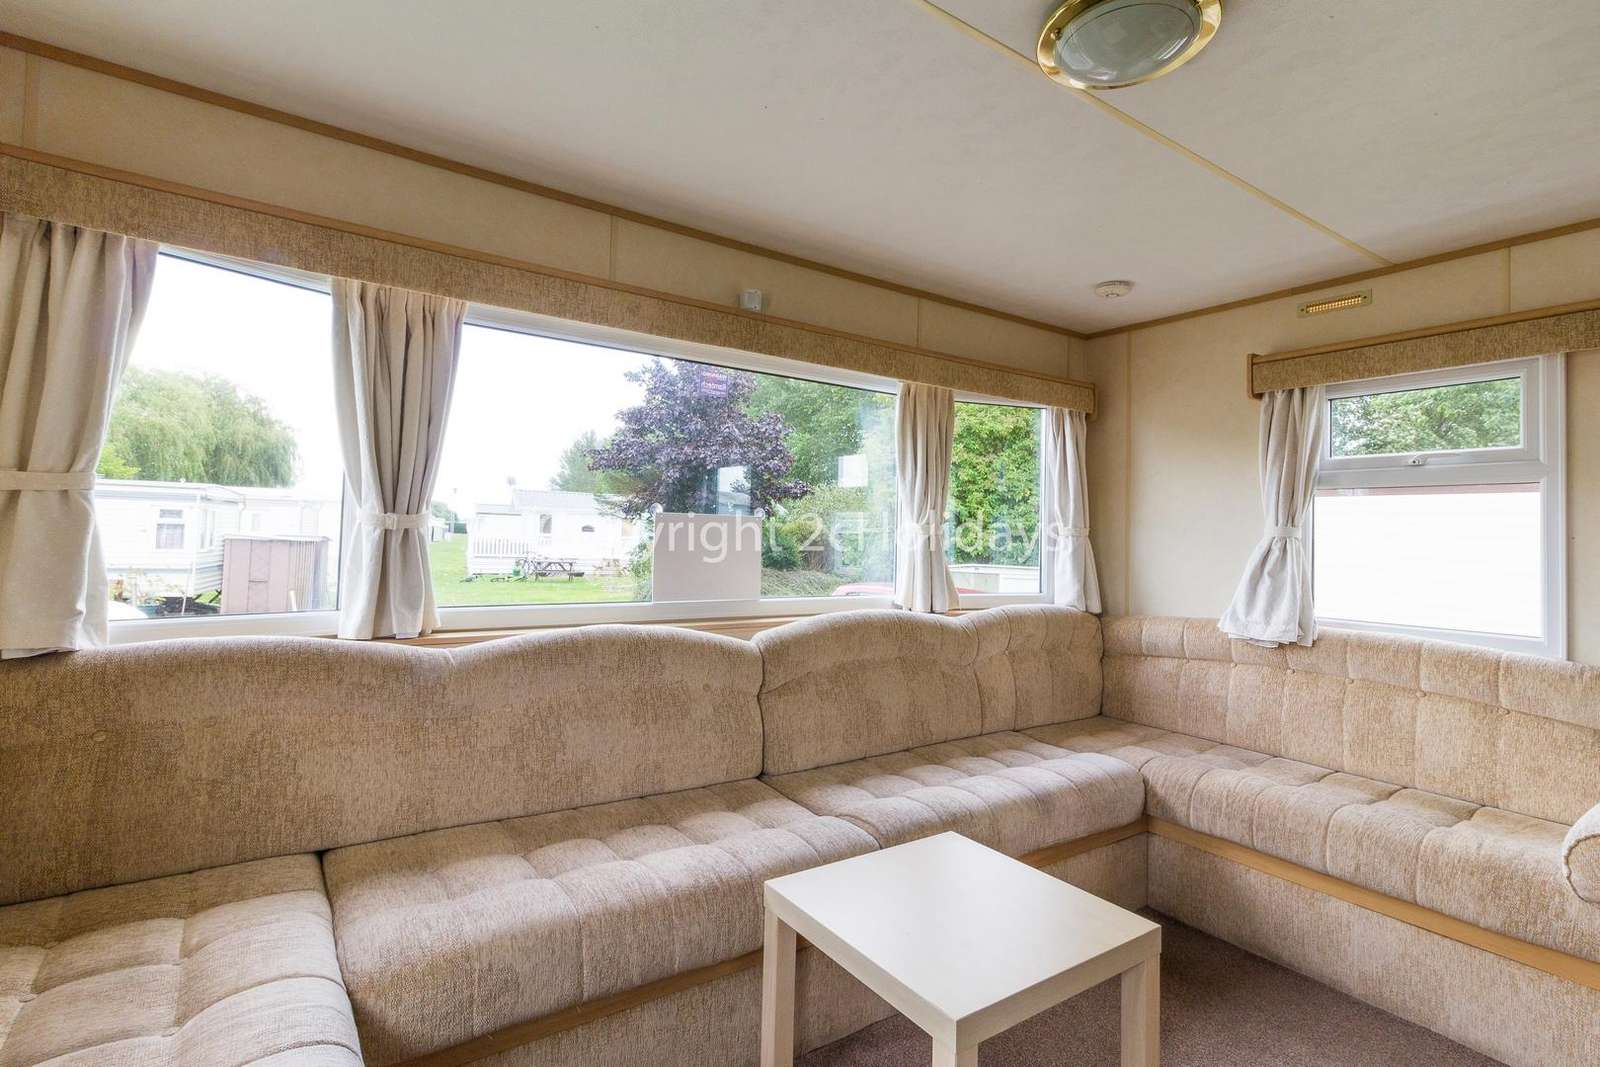 Close to the beautiful fishing lake and only a short drive to the lovely seaside town of Skegness.